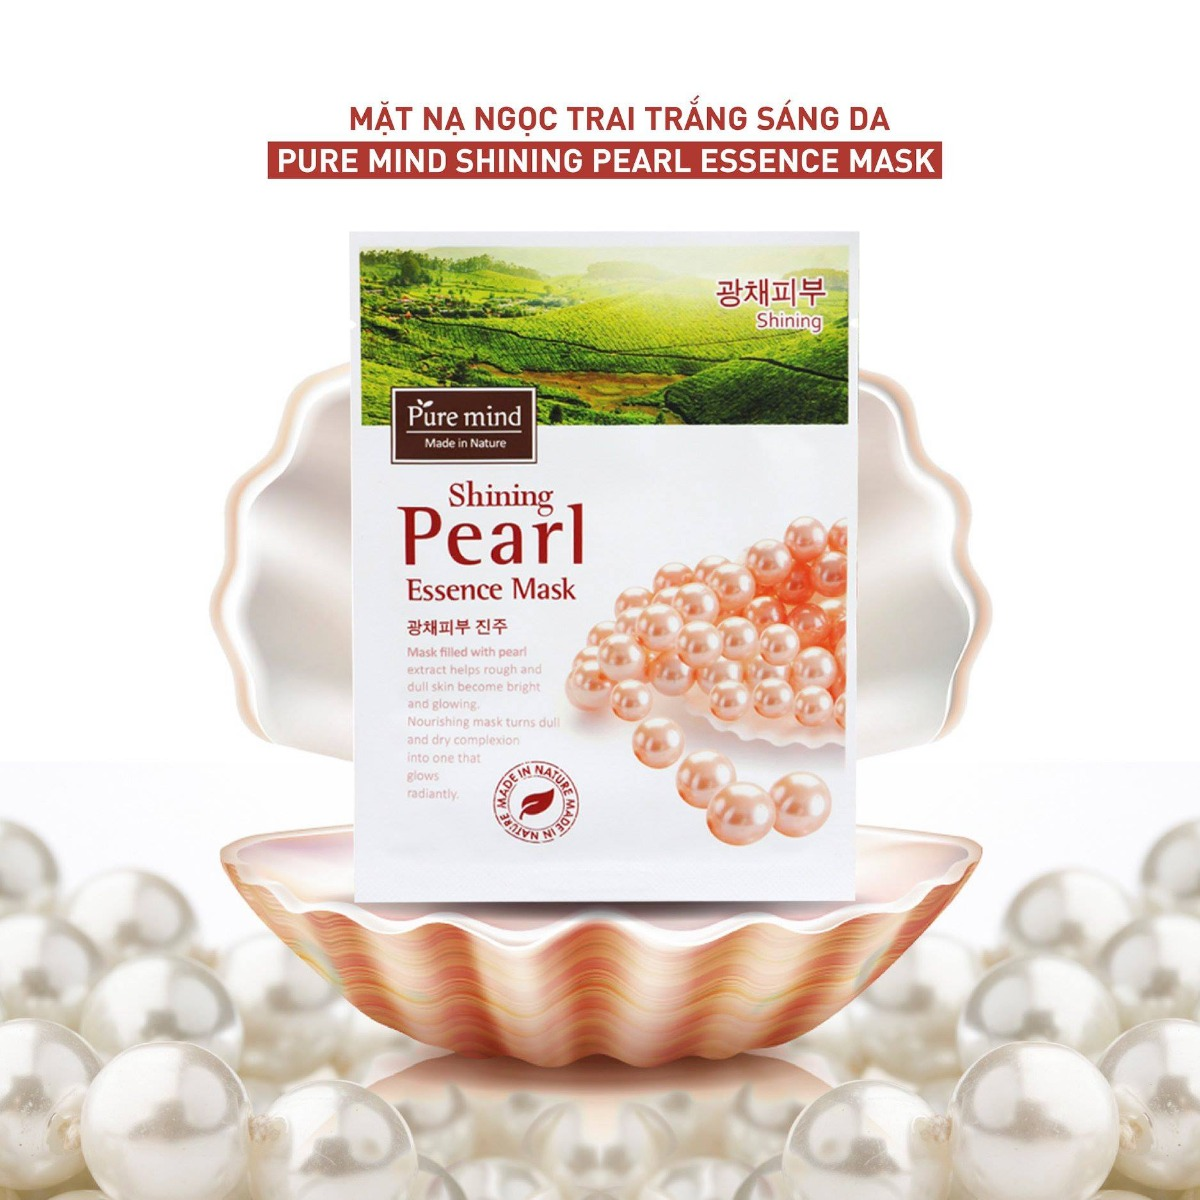 Mặt Nạ Pure Mind Chiết Xuất Ngọc Trai - Shining Pearl